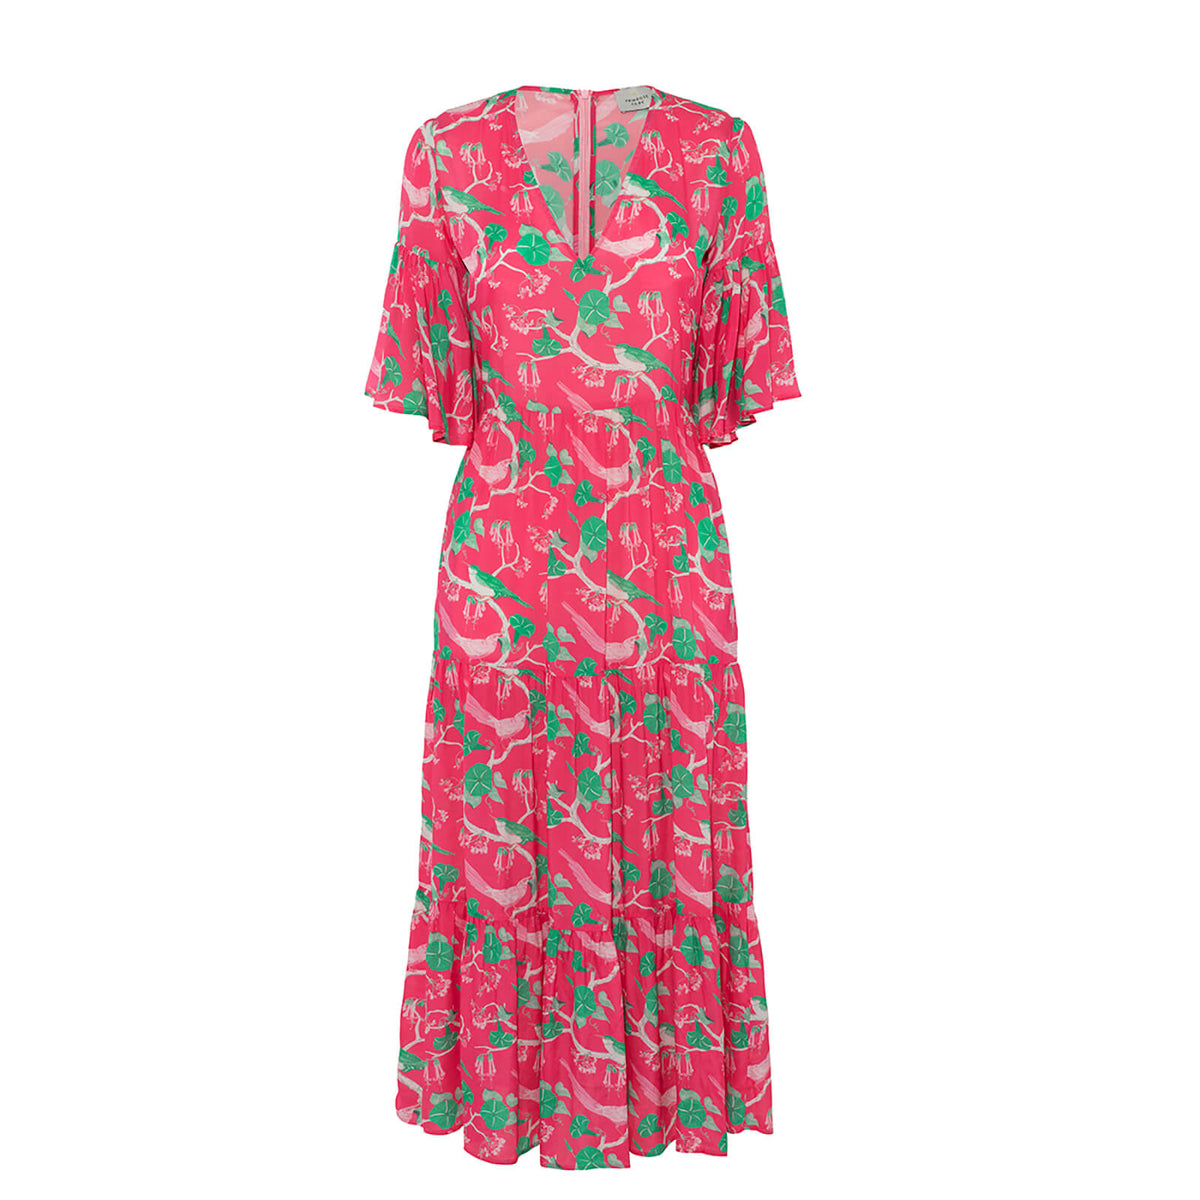 PP Alice dress in pink glorious